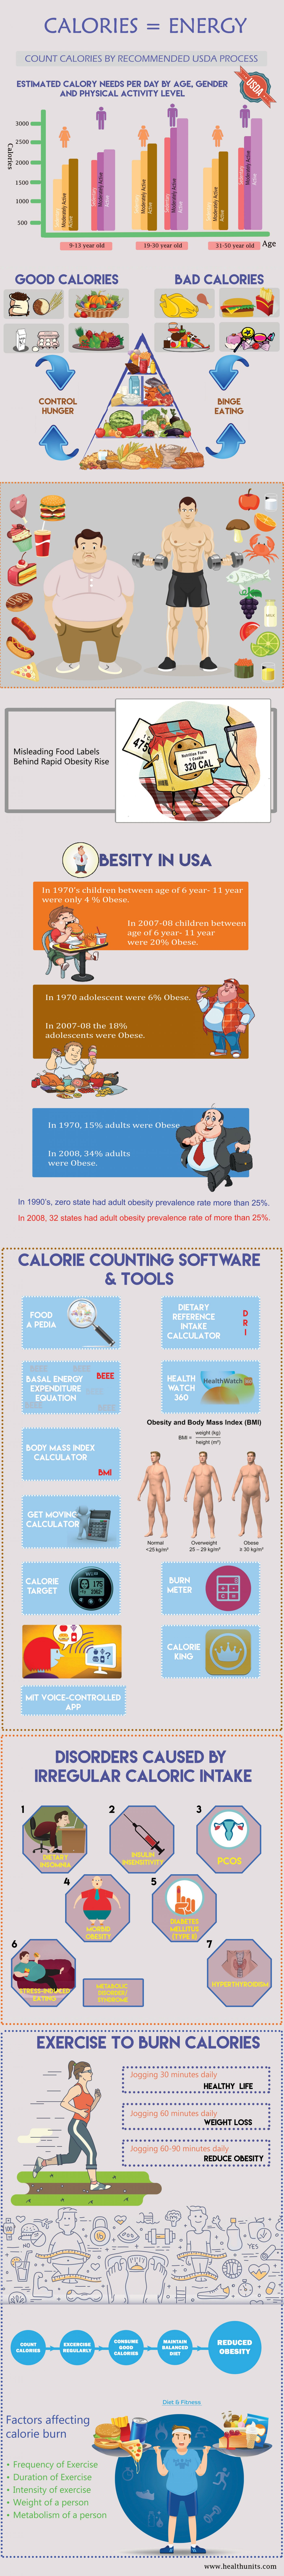 why-calorie-counting-is-important, long term weight loss